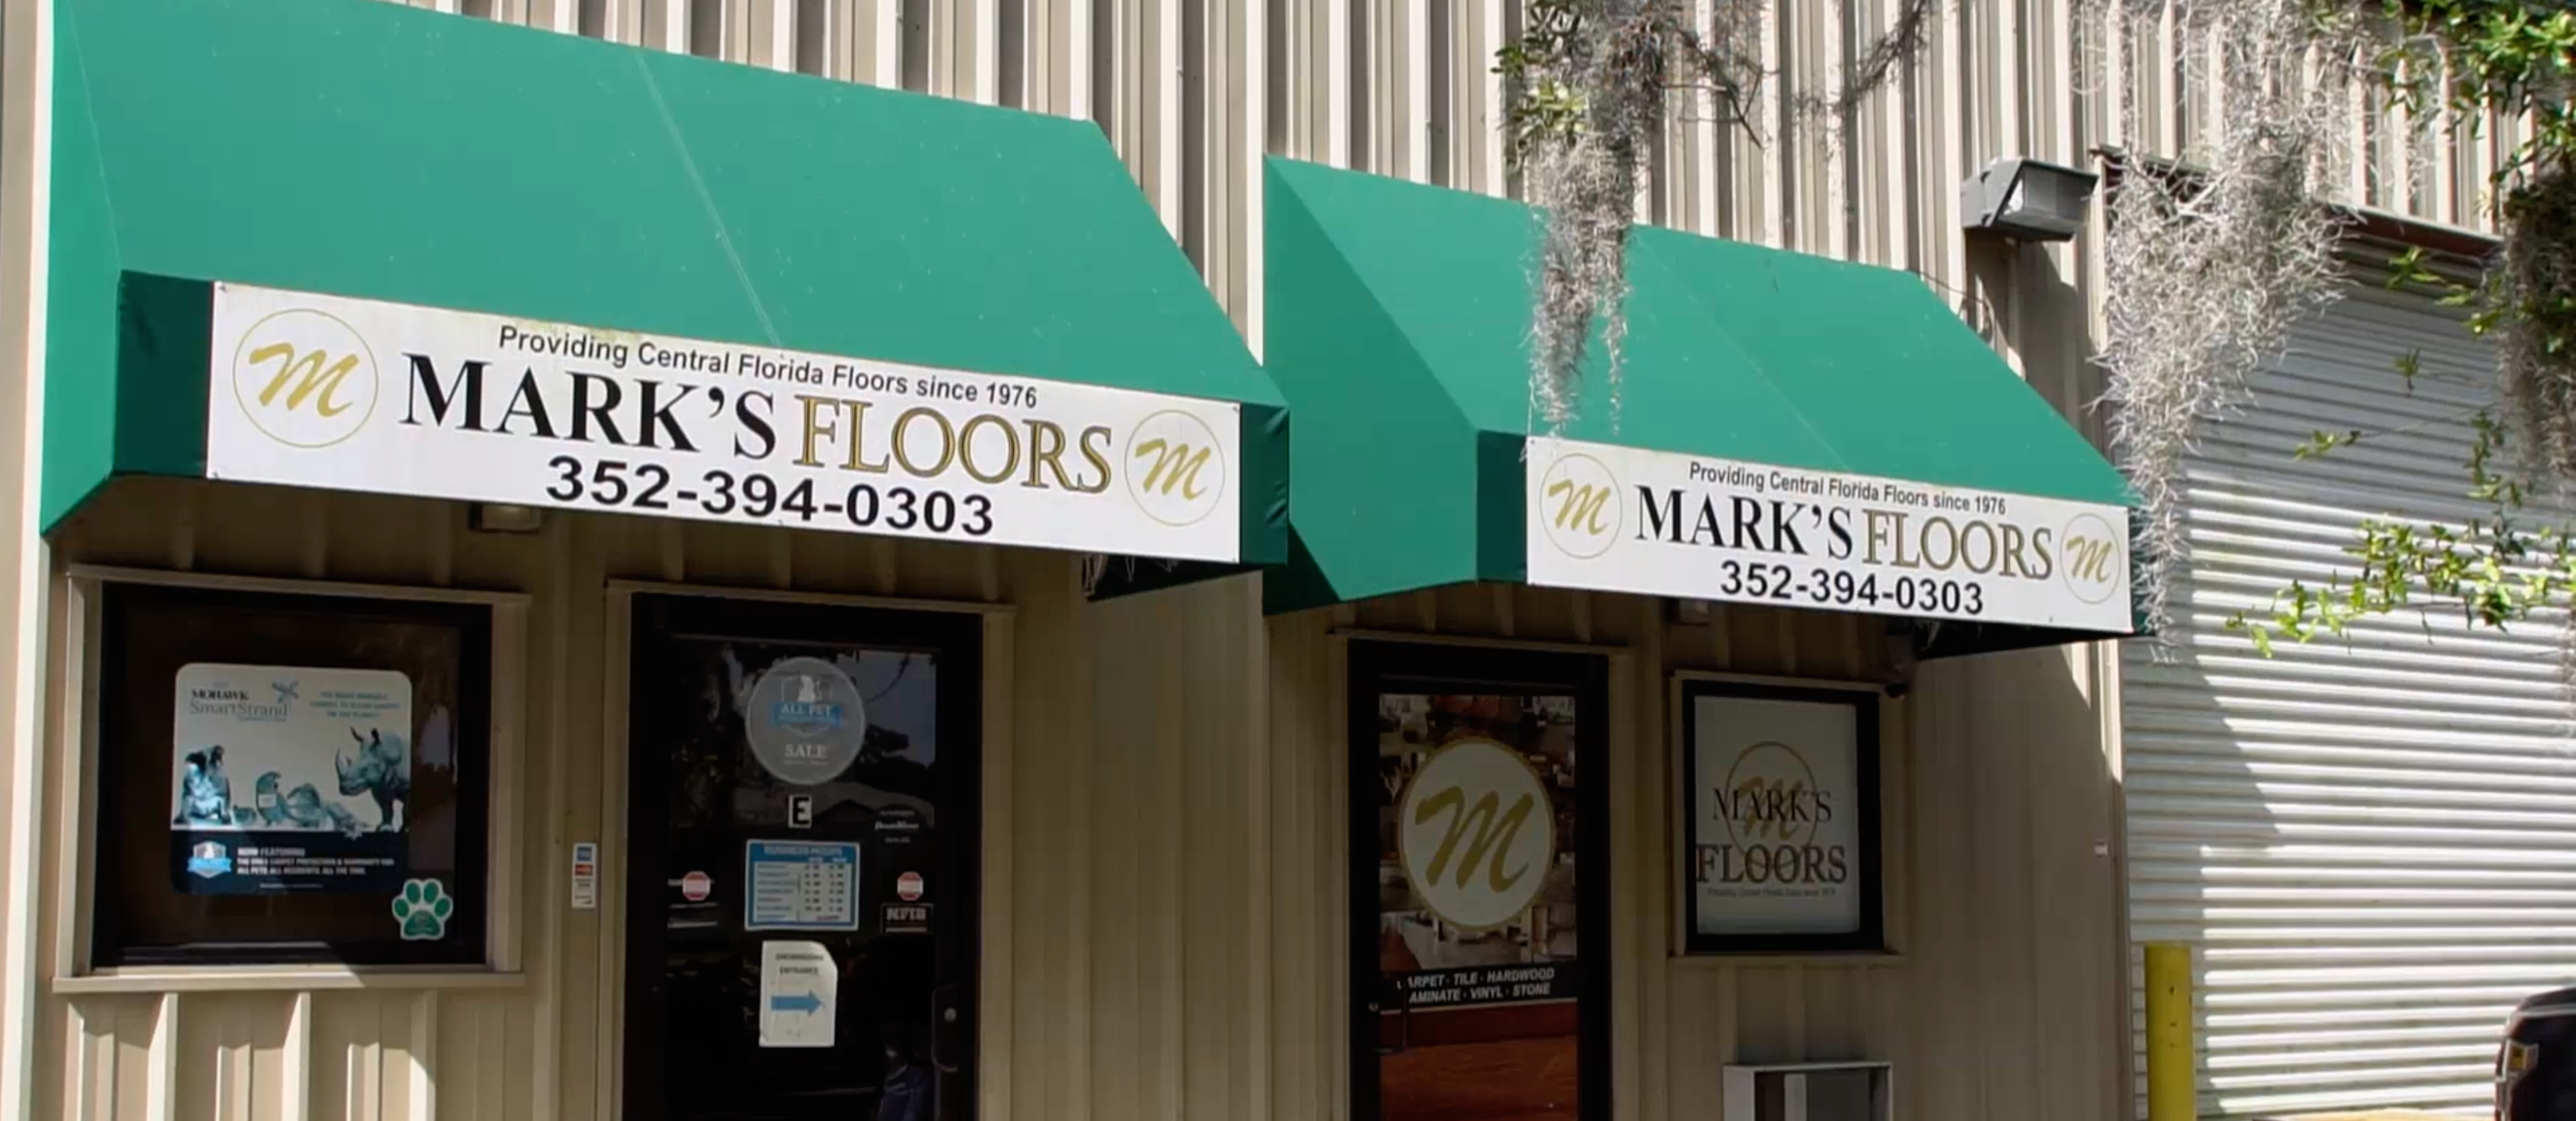 Mark's Floors - 301 E Washington St Minneola, FL 34715